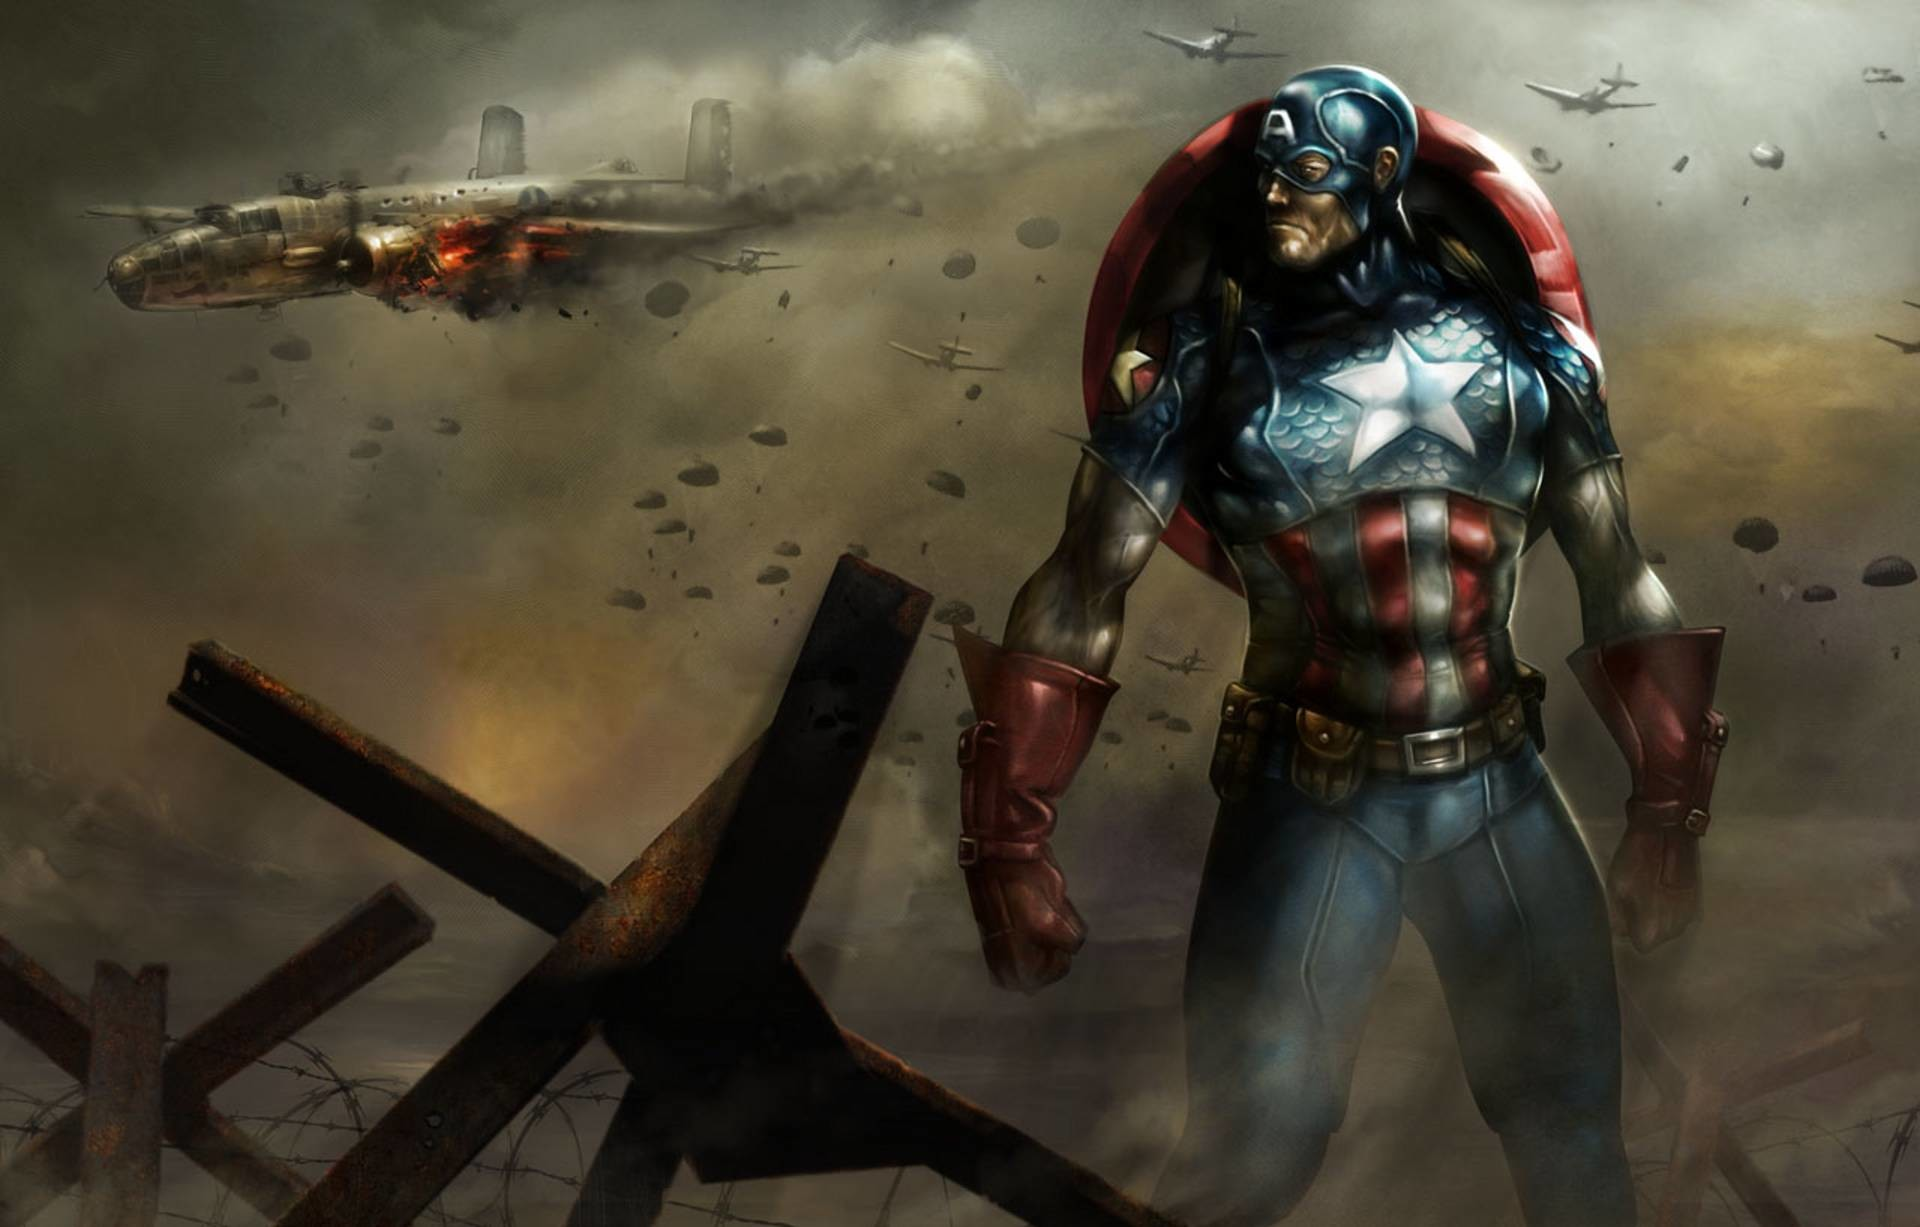 1920x1227 Marvel Comics, Chris Evans, Iron Man, The First Avenger, The Winter Soldier  · Marvel Comics, Hd Wallpaper ...